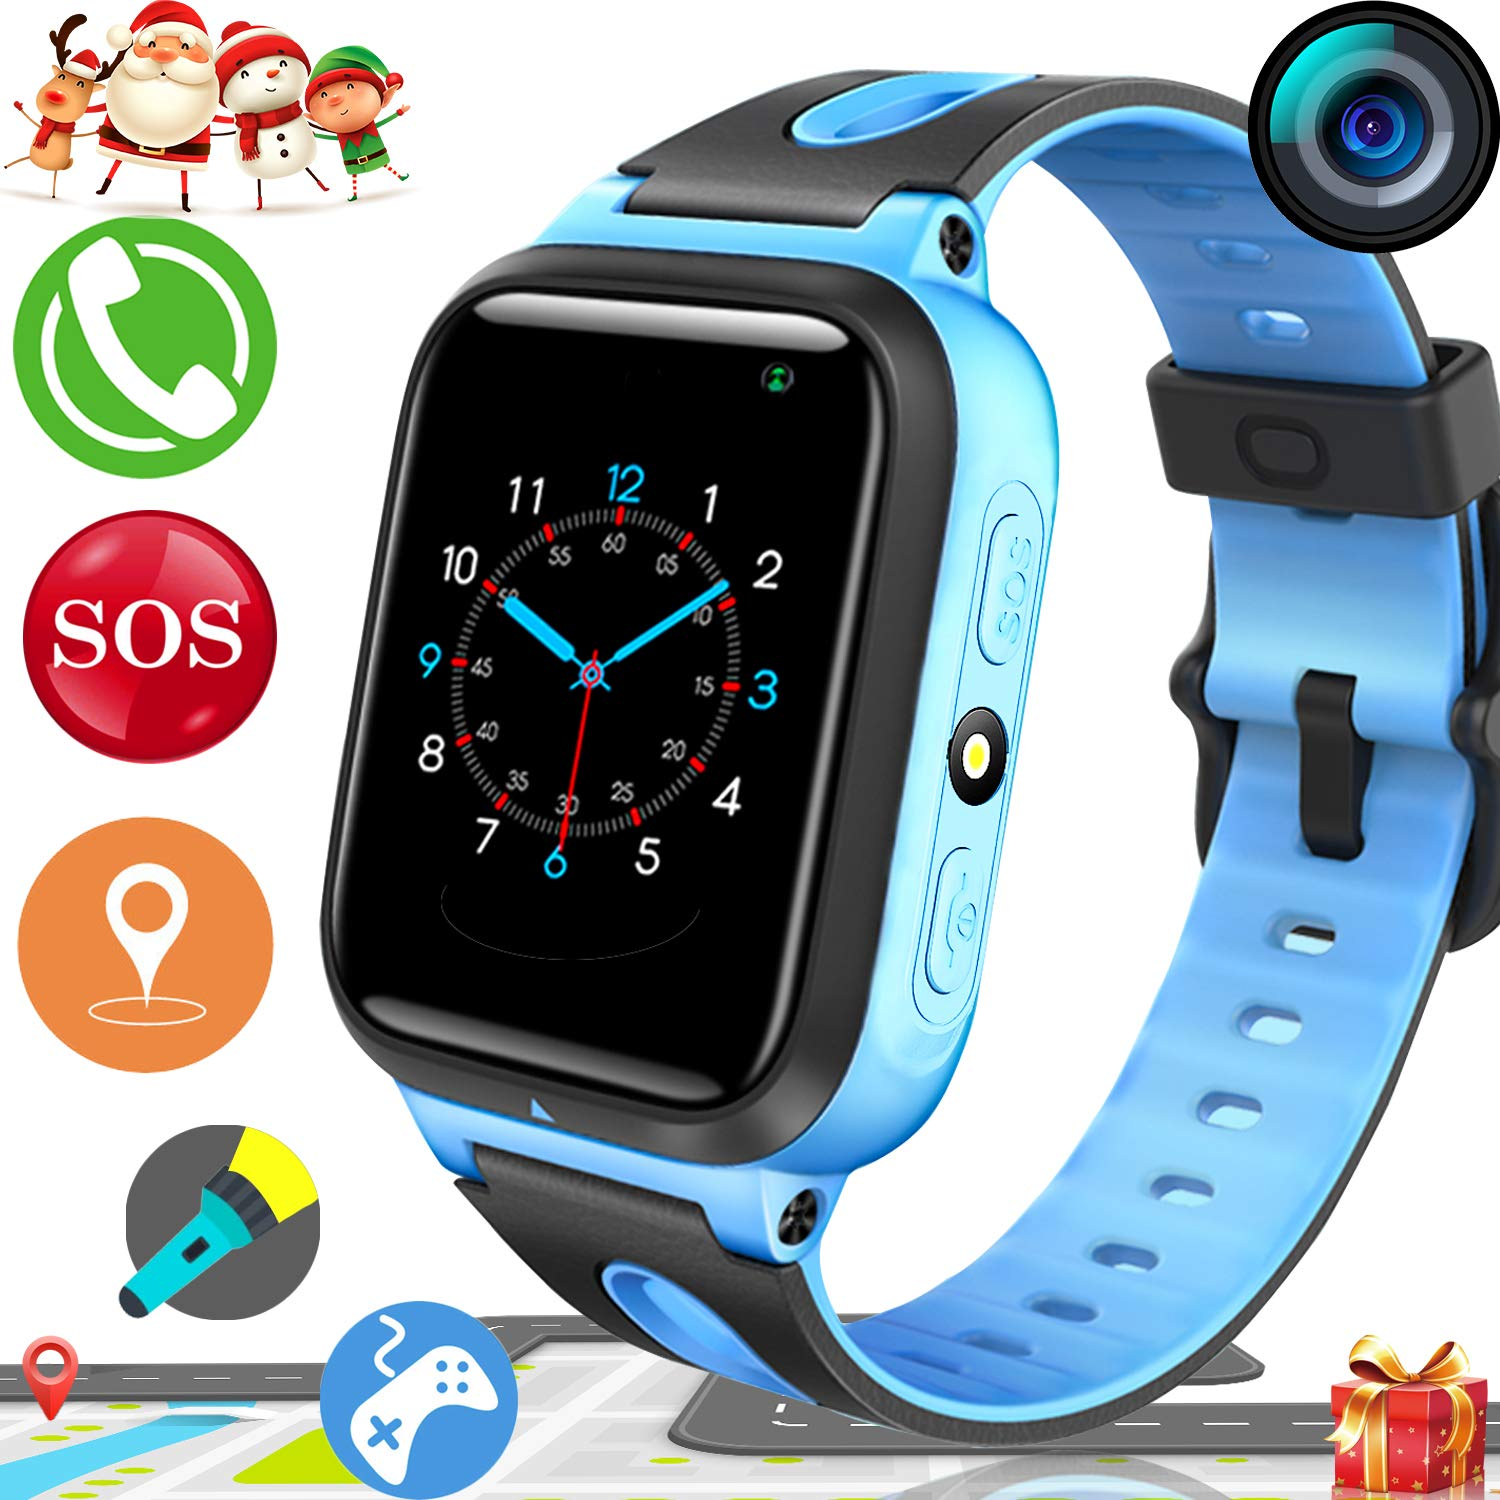 Boys Christmas Presents 2019.2019 Upgrades Kids Smart Watch Phone Gps Tracker For Boys Girls Christmas Gifts Game Watch With Anti Lost Sos Camera Flashlight 1 54 Touch Screen